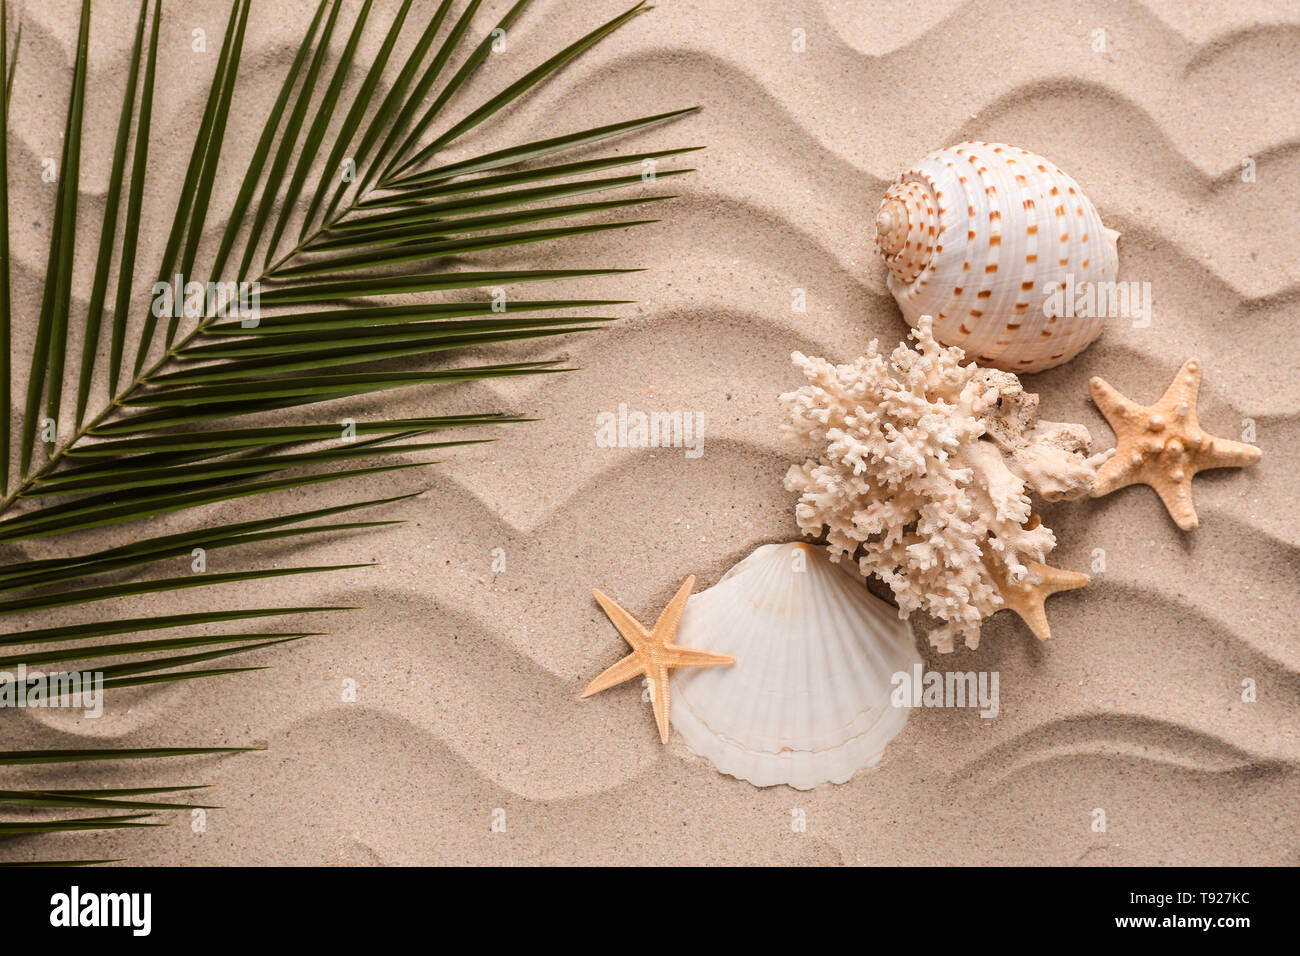 Sea shells with starfishes and tropical leaf on sand - Stock Image